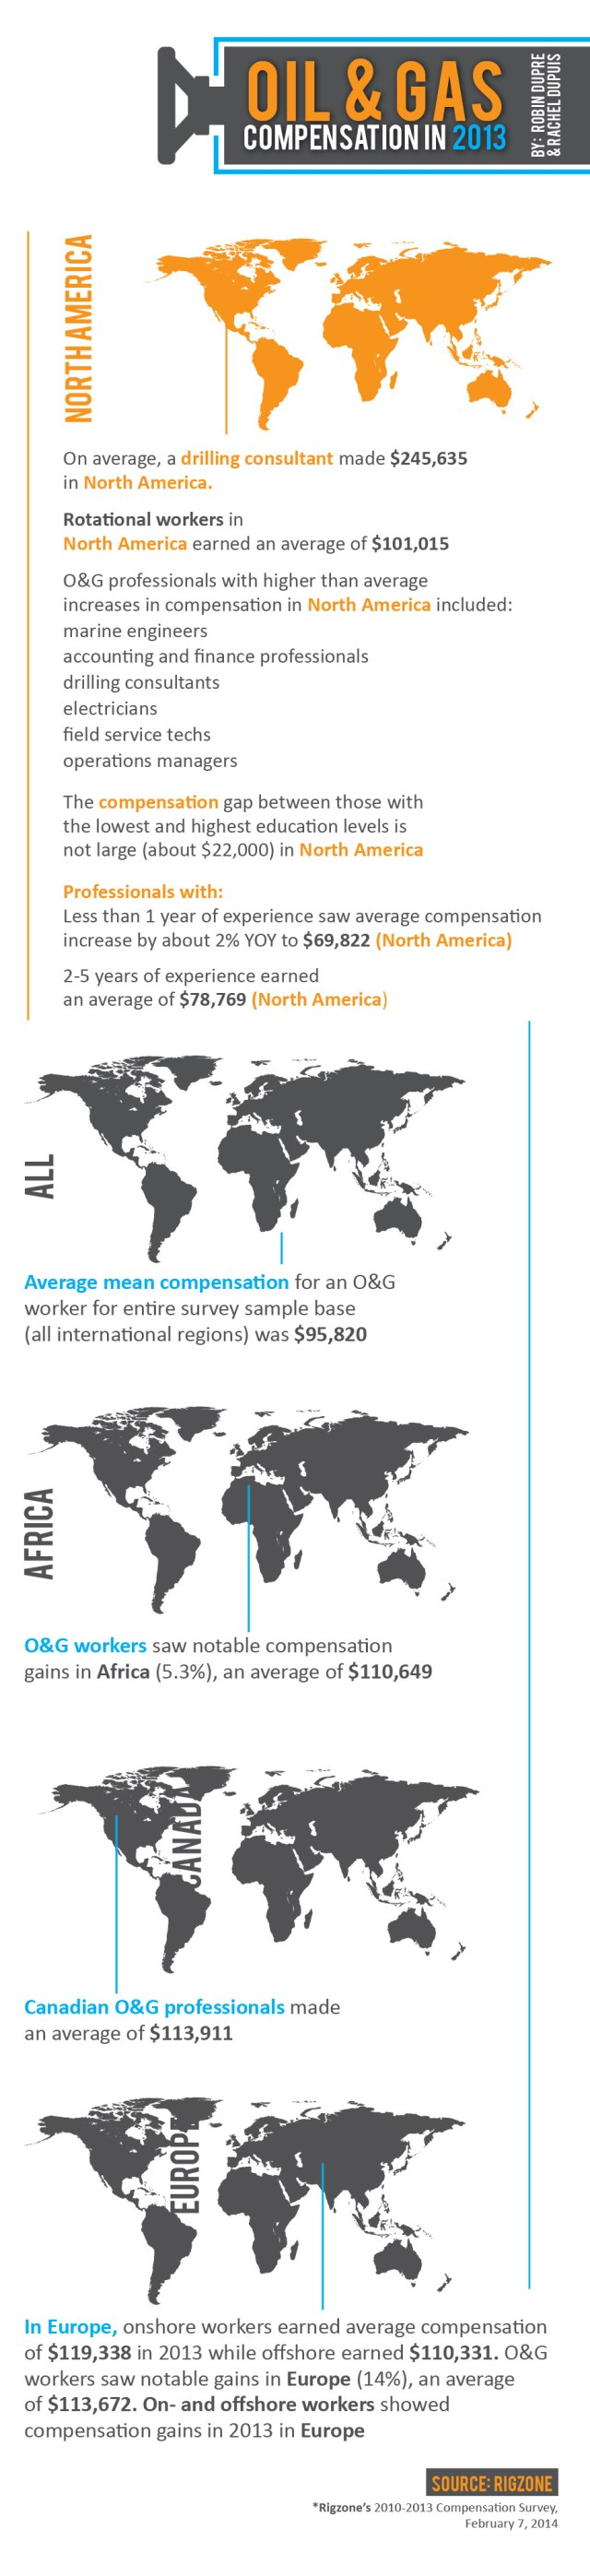 Global: Oil, Gas Compensation in 2013